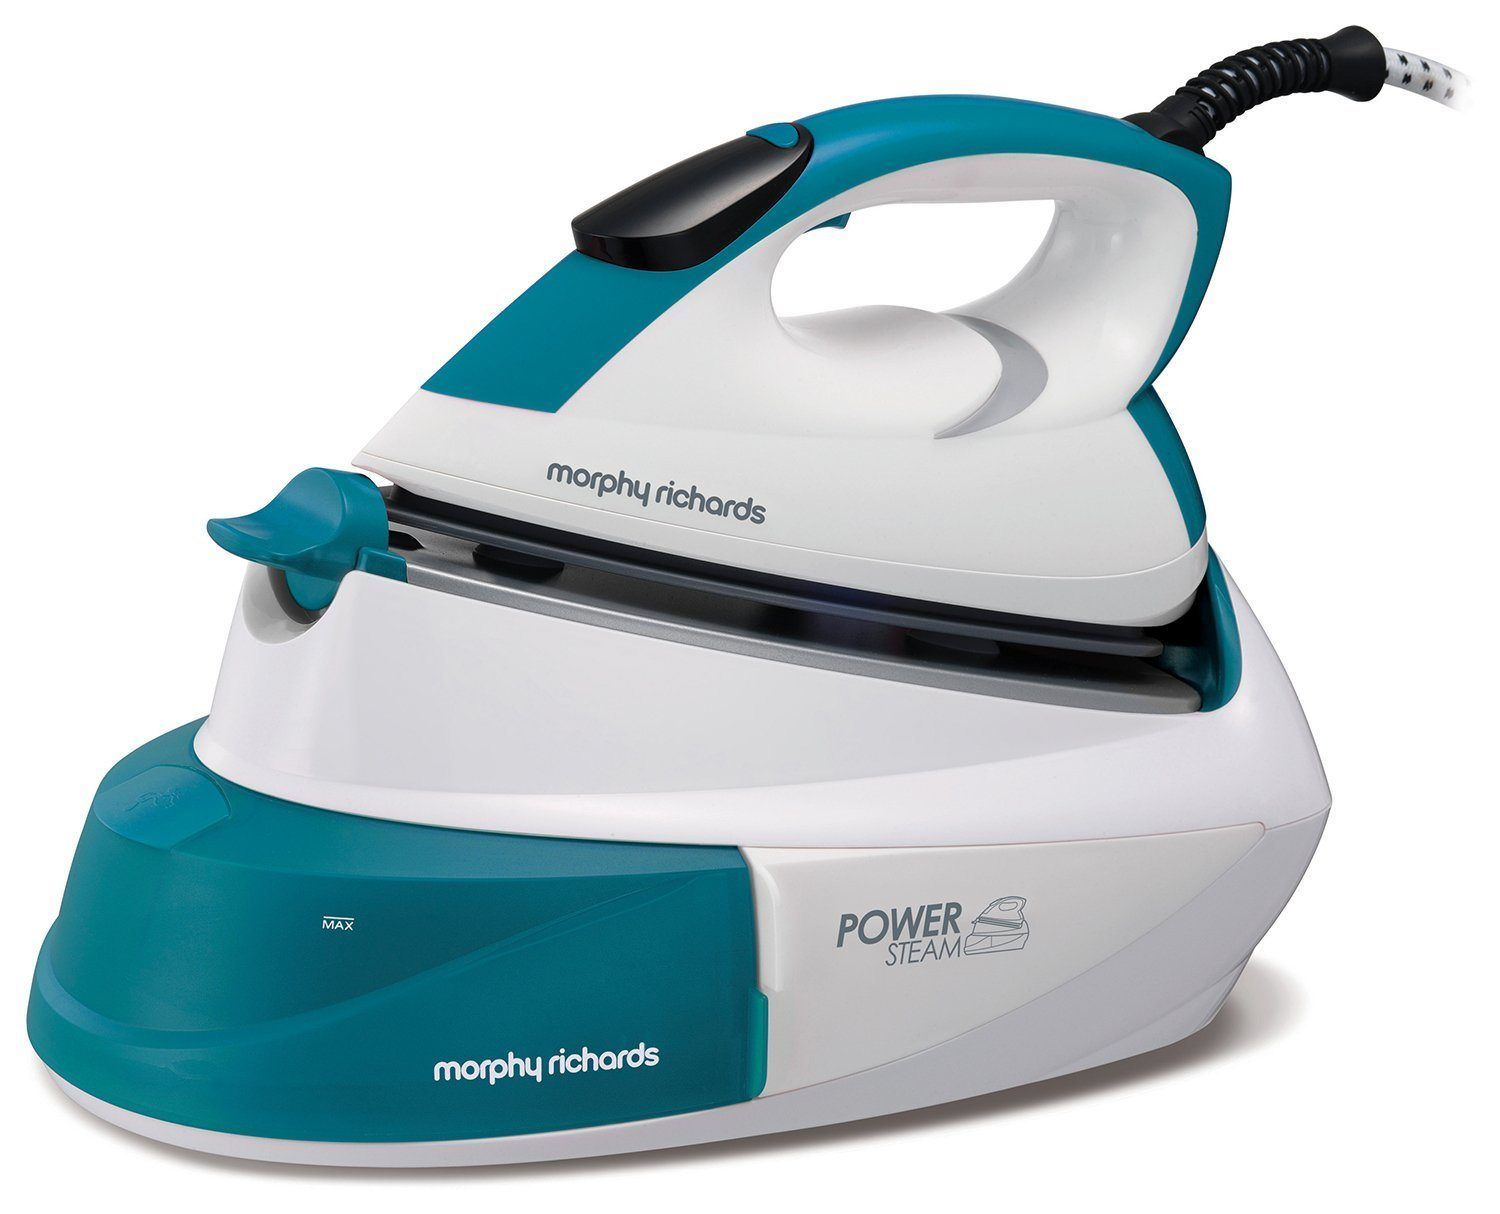 Morphy Richards 333005 Power Steam with IntelliTemp Compact Steam Generator